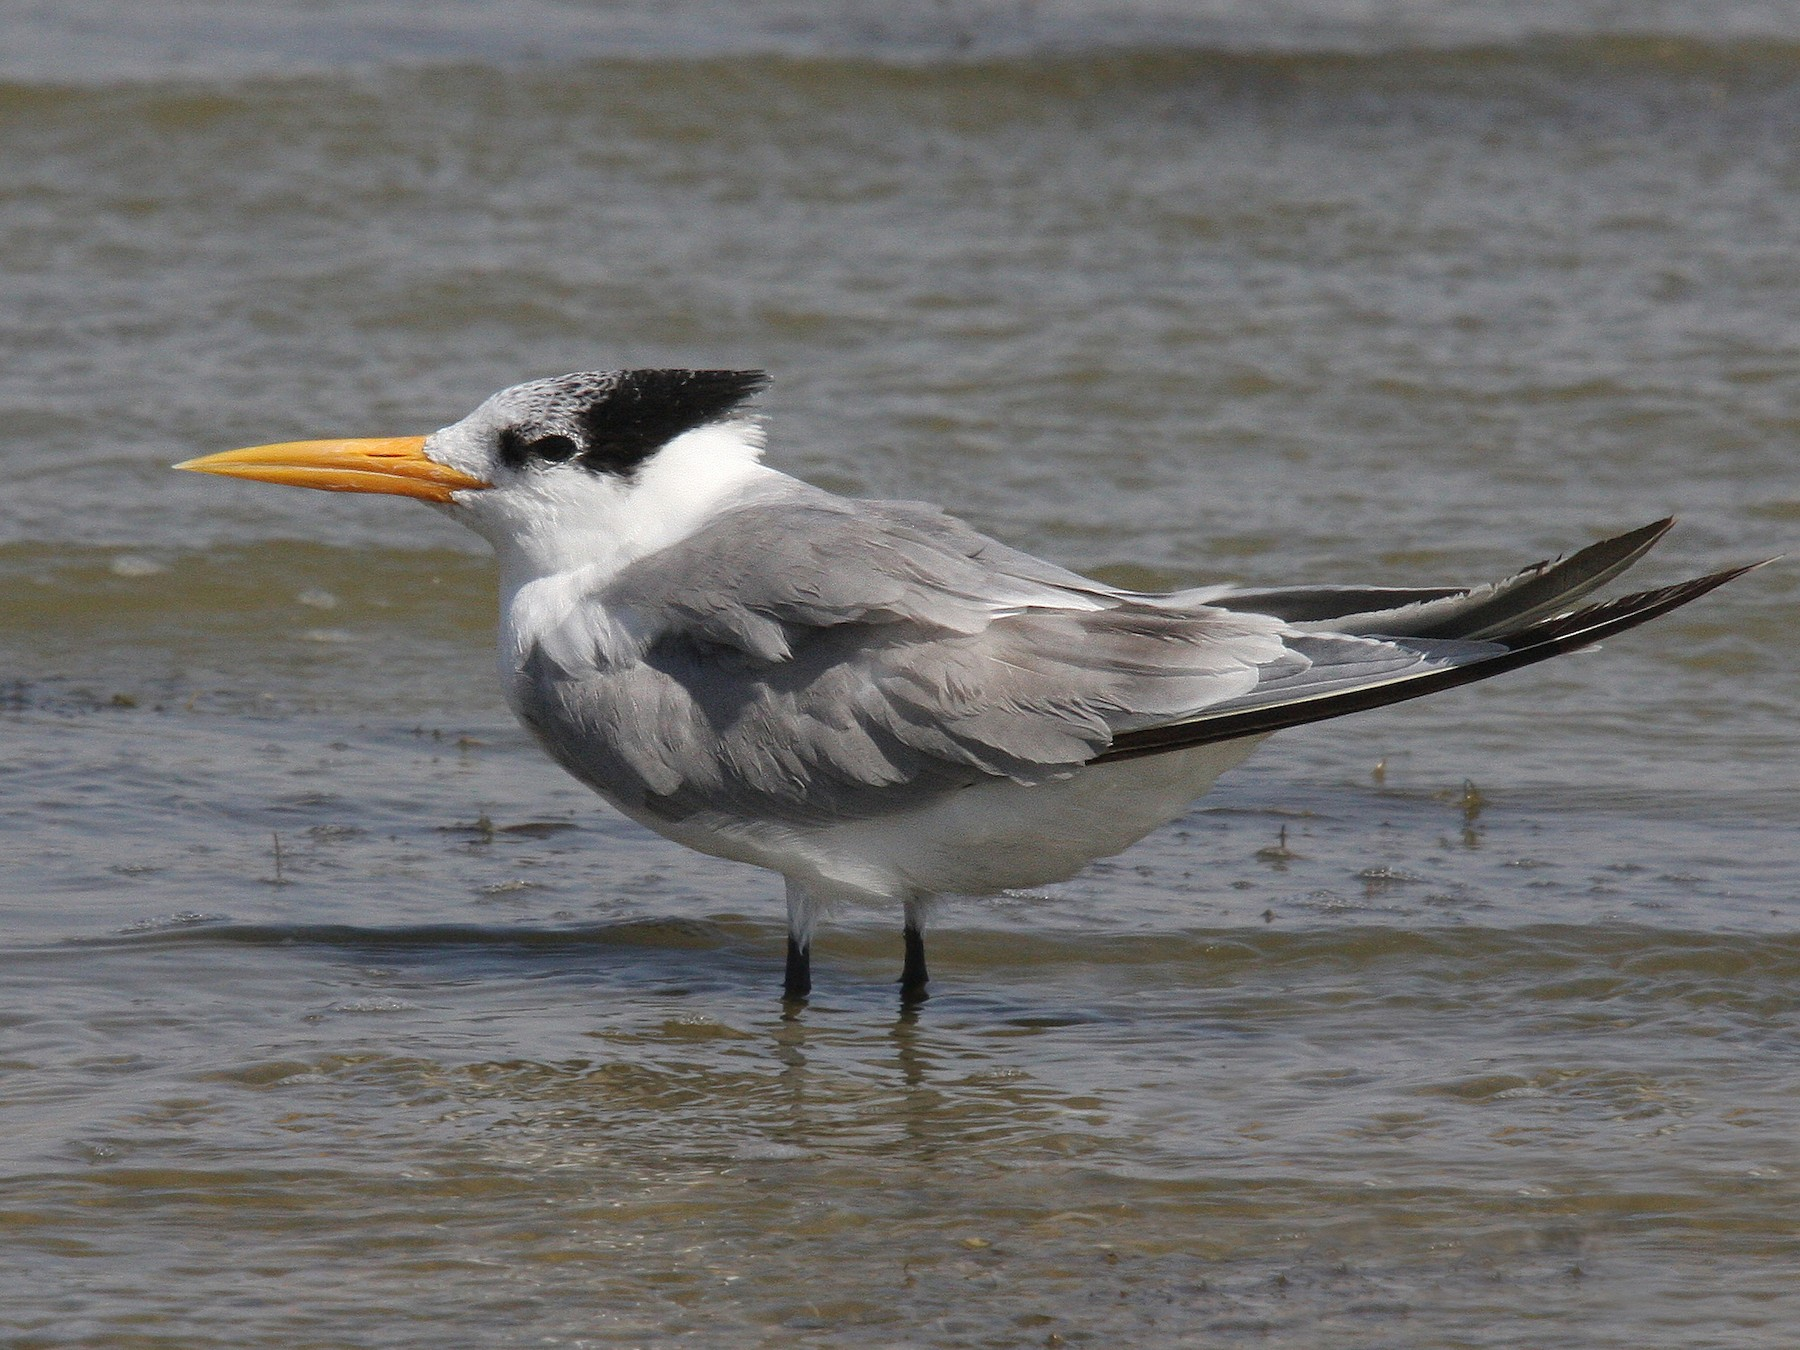 Lesser Crested Tern - Christoph Moning